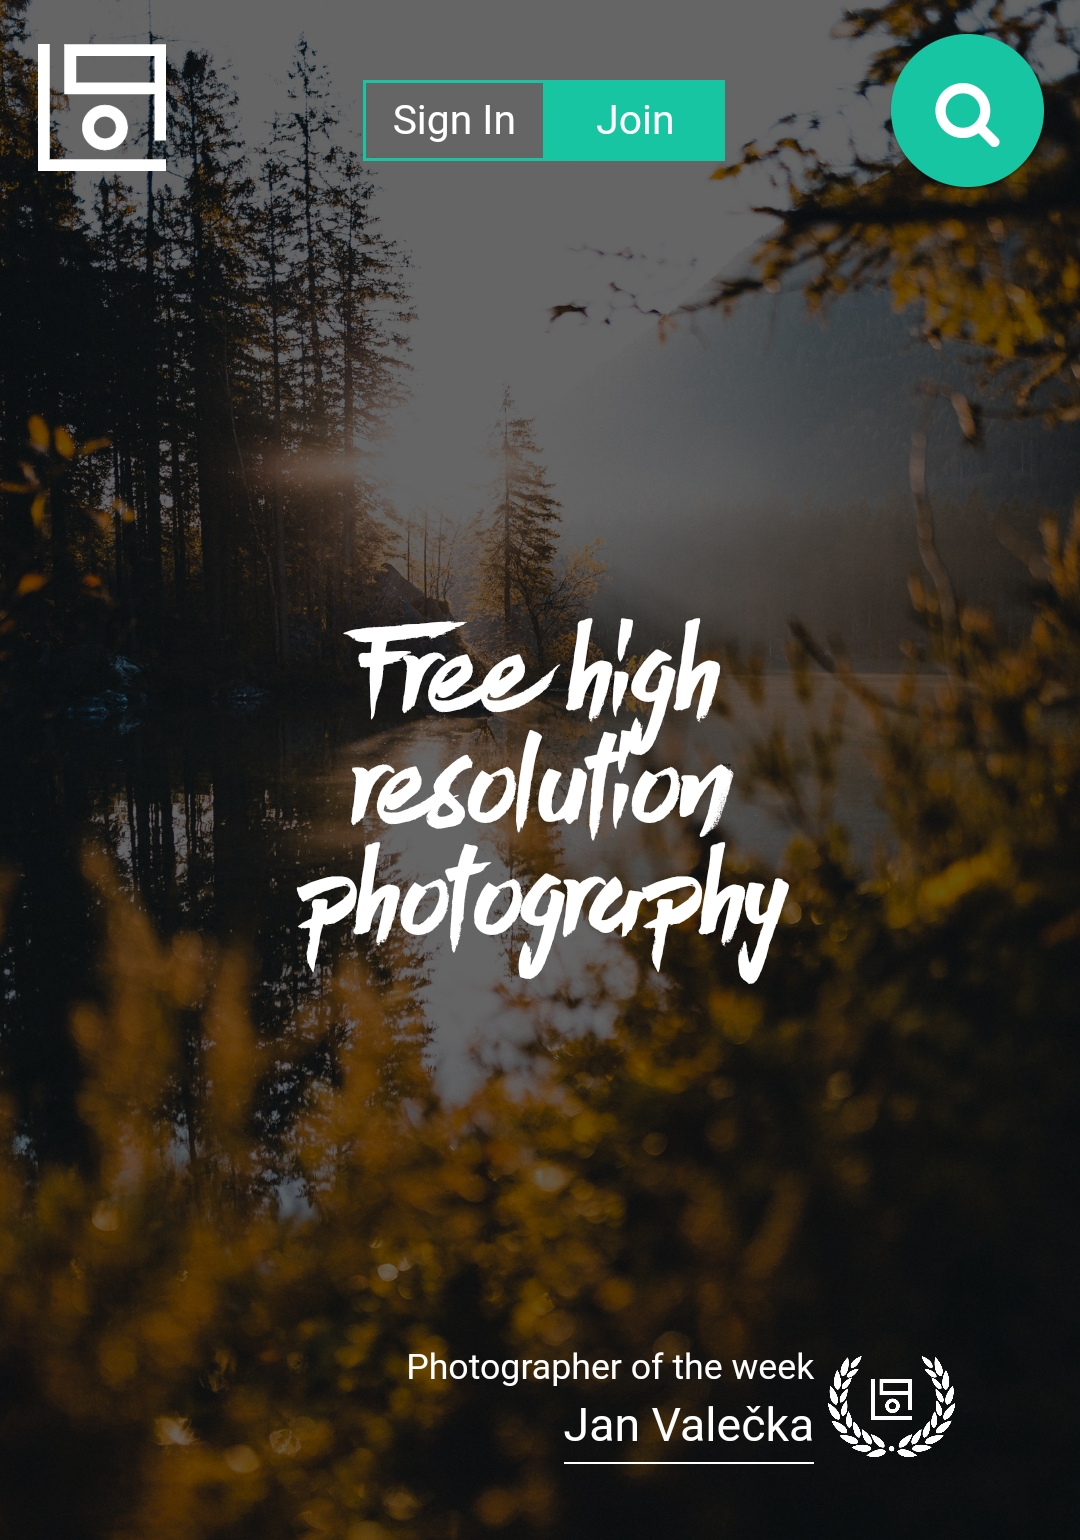 FREE Stock Photos Websites without Watermark